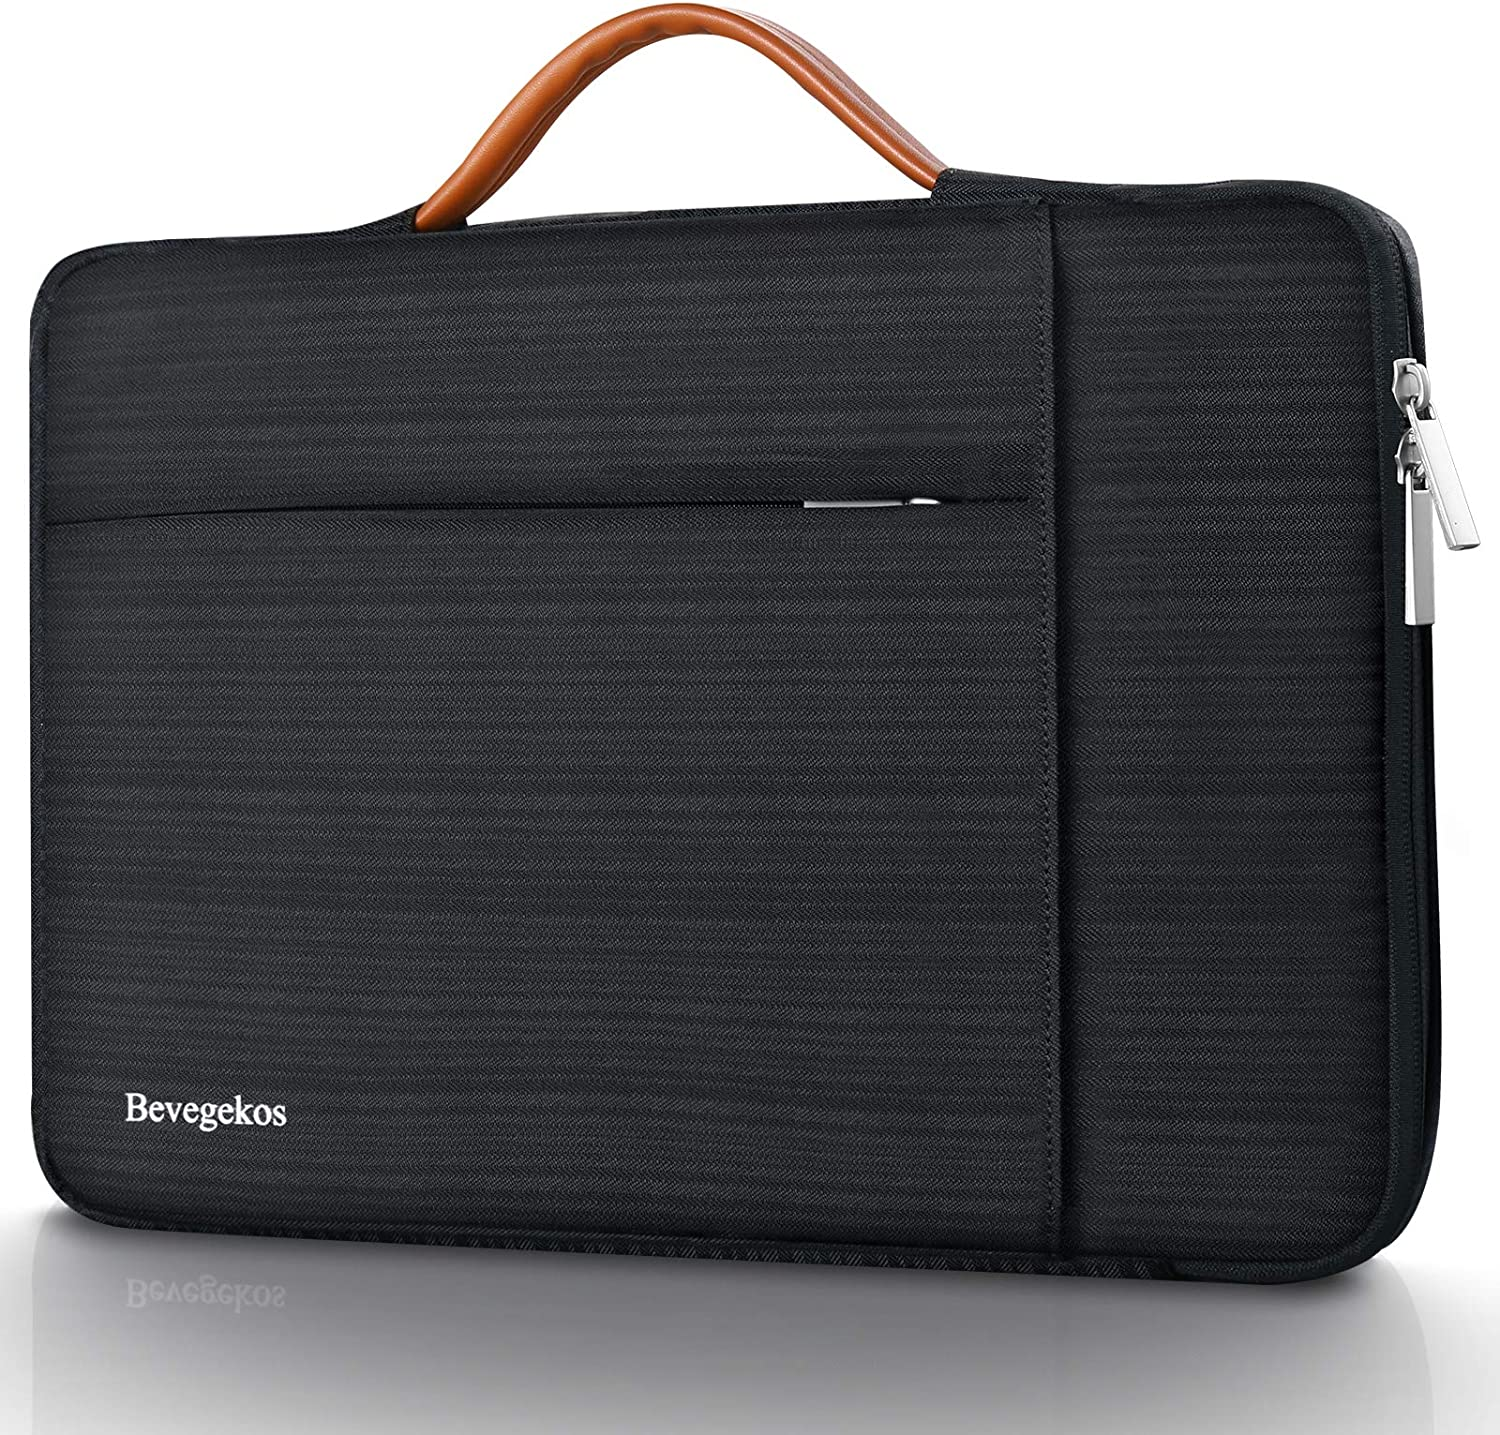 13 Inch Laptop Sleeve, Bevegekos 360 Protective Carrying Case for 13 inch MacBook Pro 2012-2020/MacBook Air 2010-2020/Surface Laptop 1/2/3, Book 1/2/3, Pro 3/4/5/6/7/X (Black)